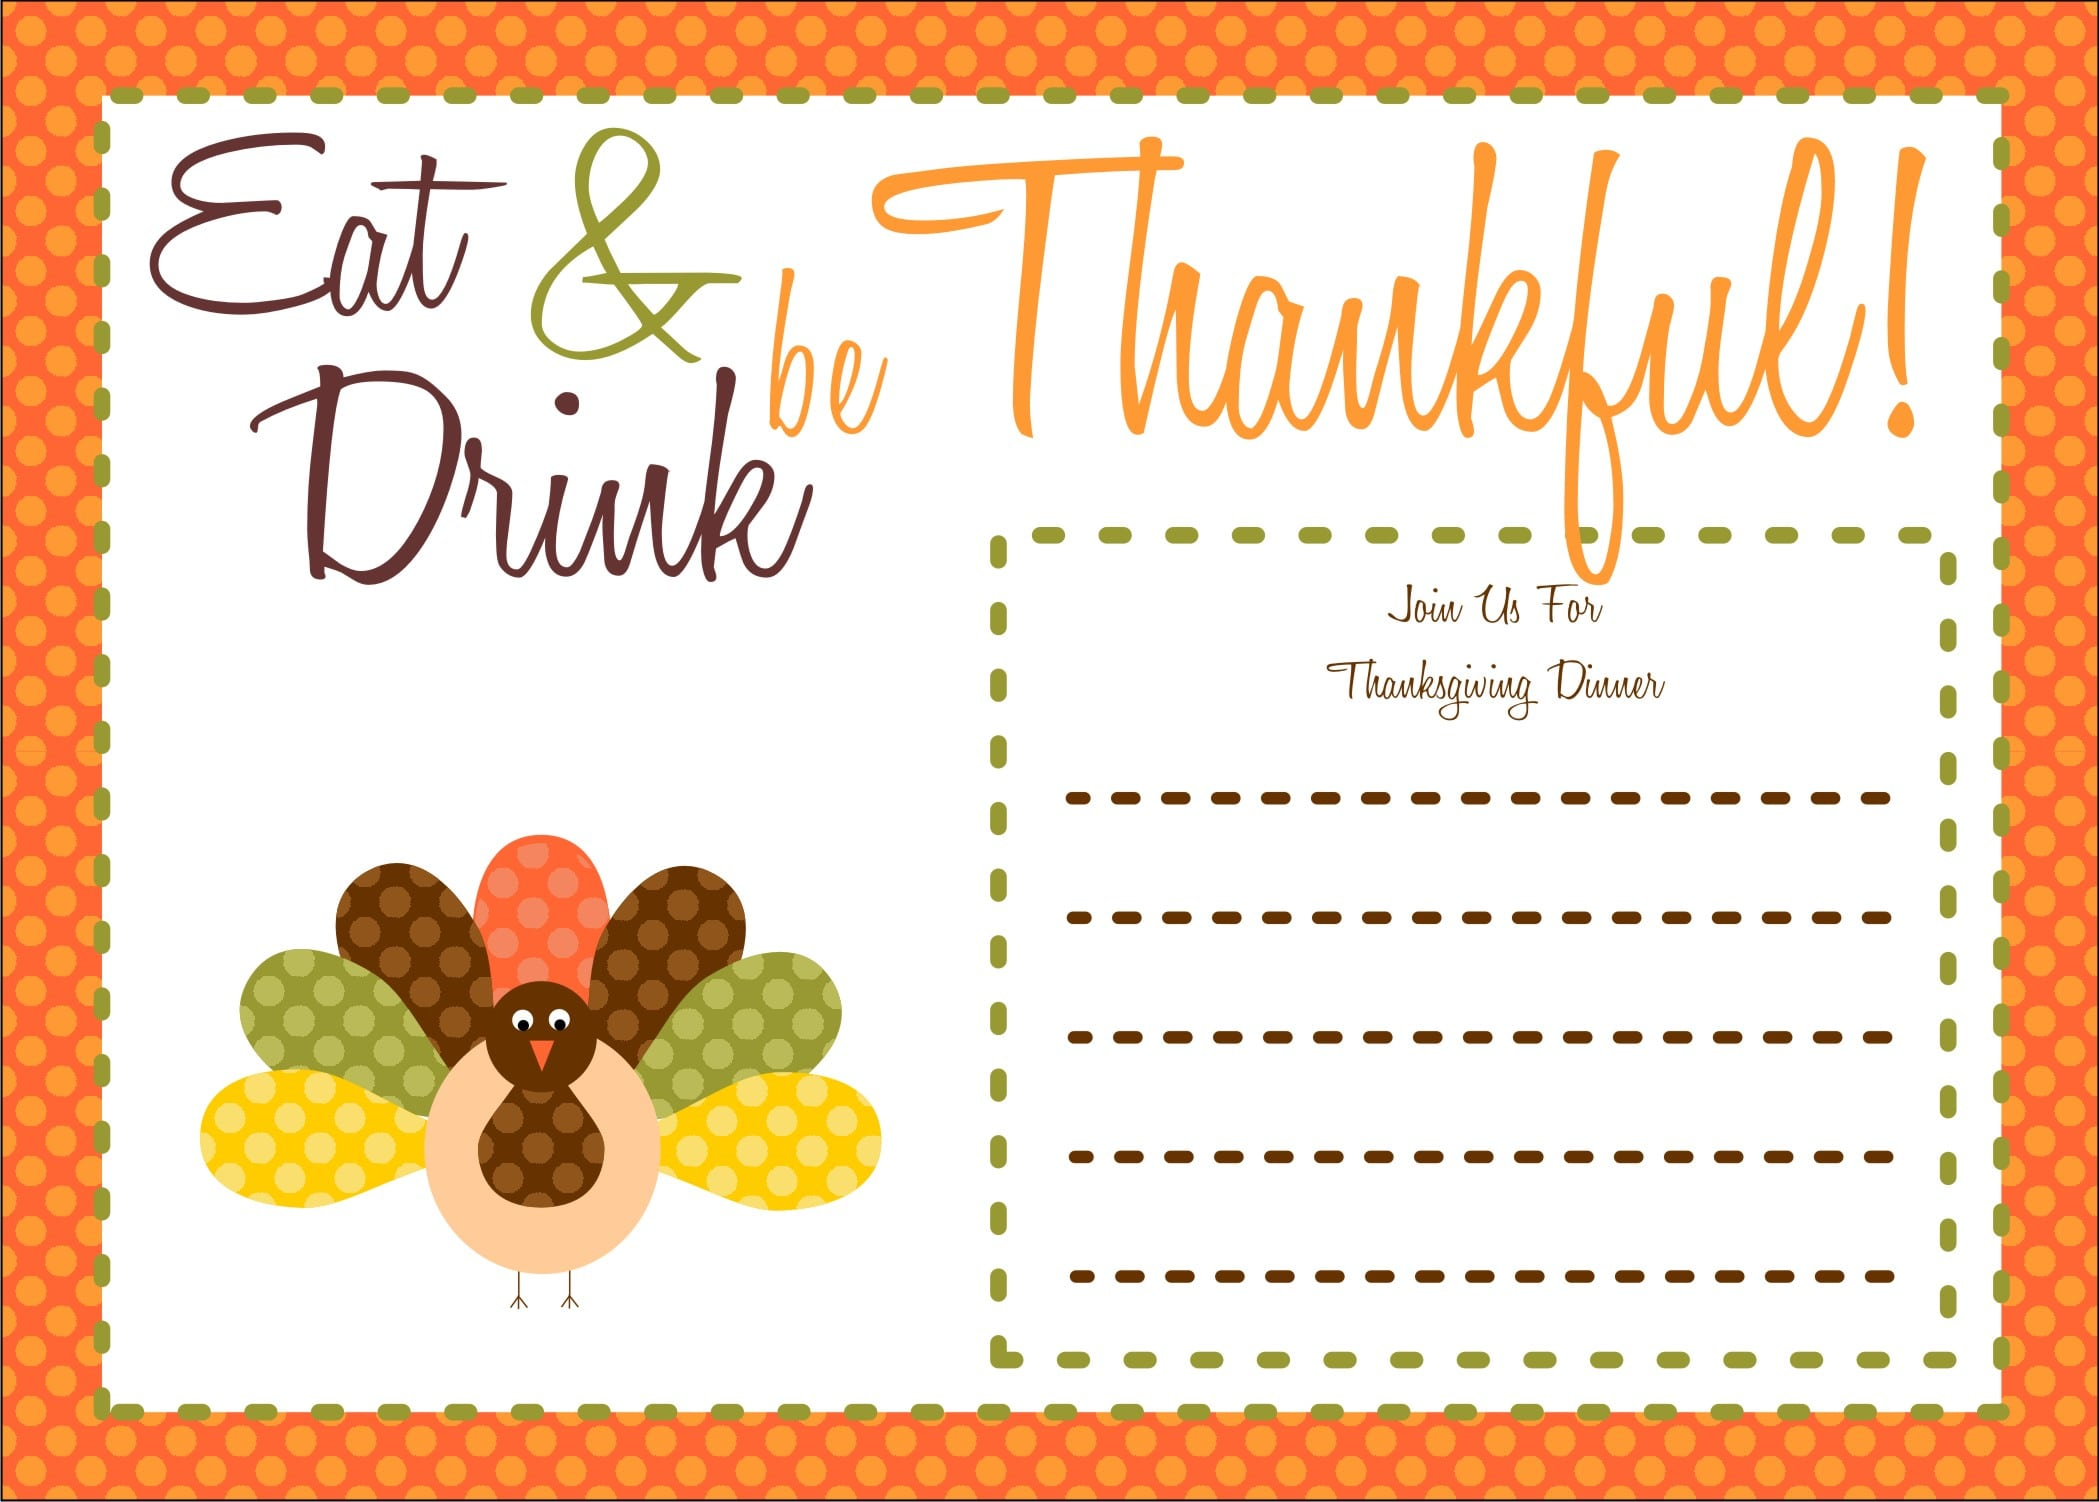 thanksgiving invite template com thanksgiving invitation templates invitationcardsforthanksgiving